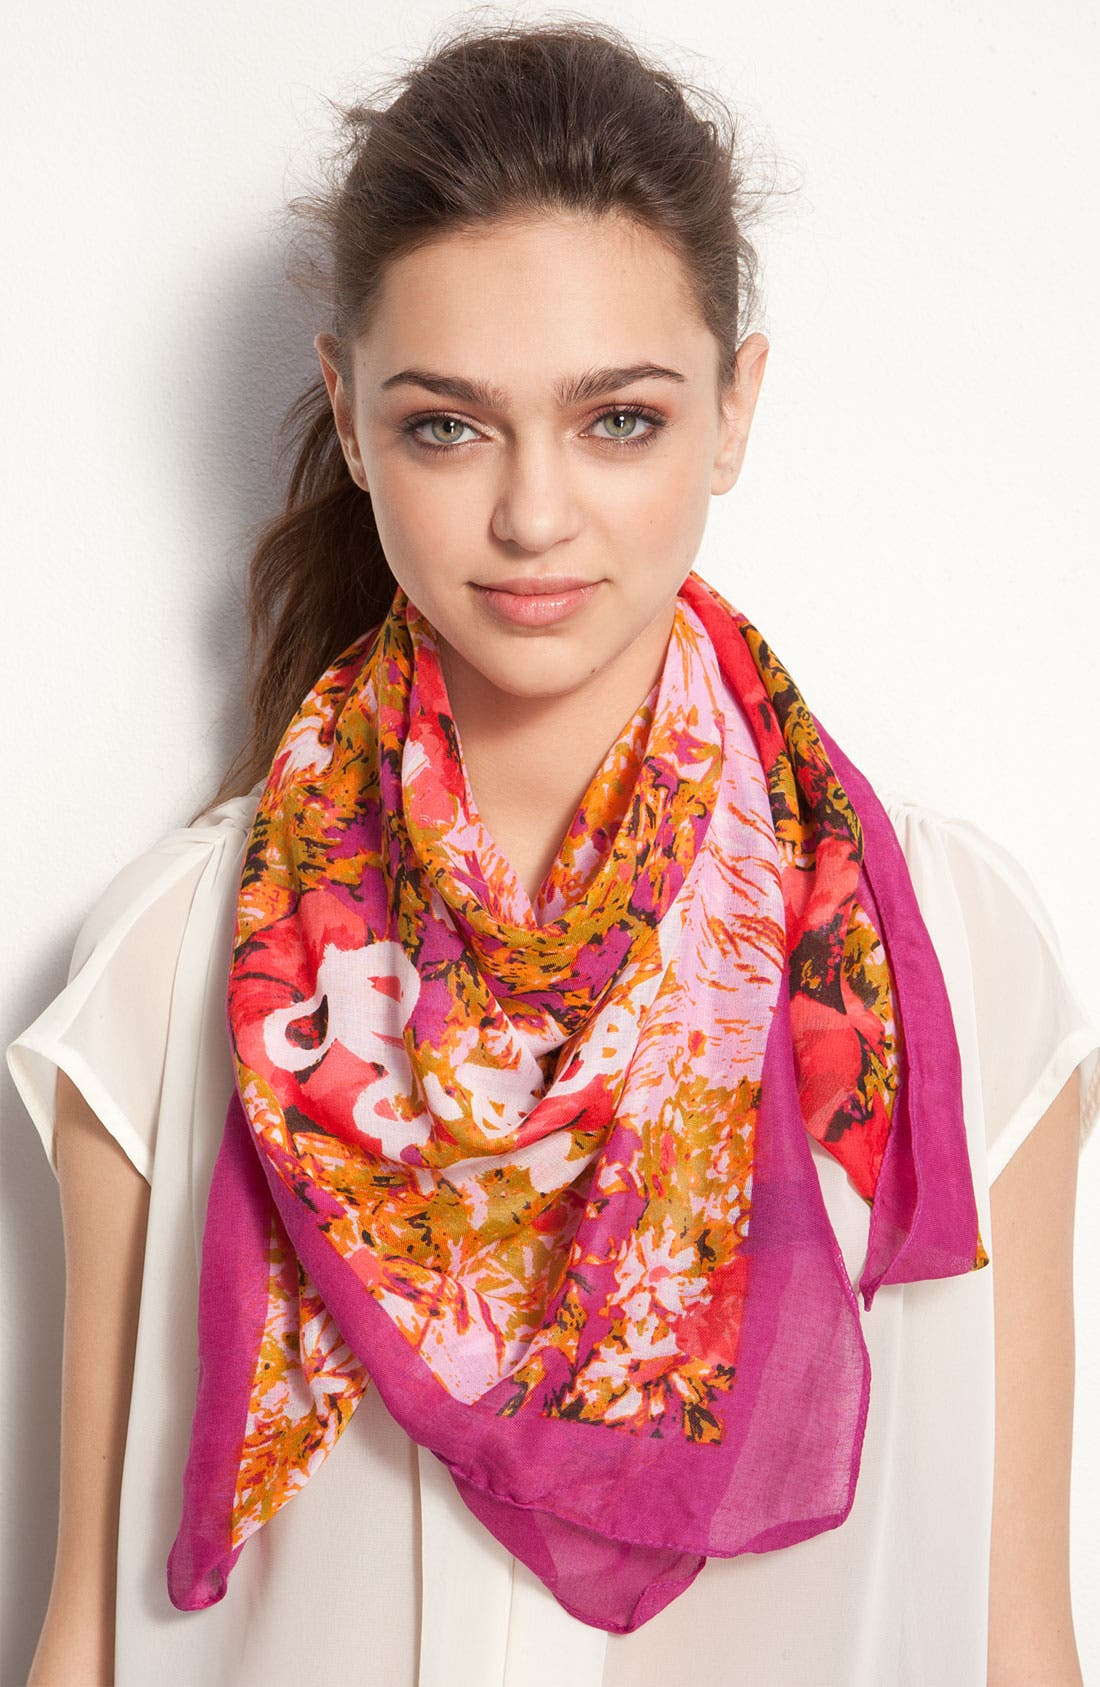 Main Image - Made of Me 'Best Friends' Floral Scarf